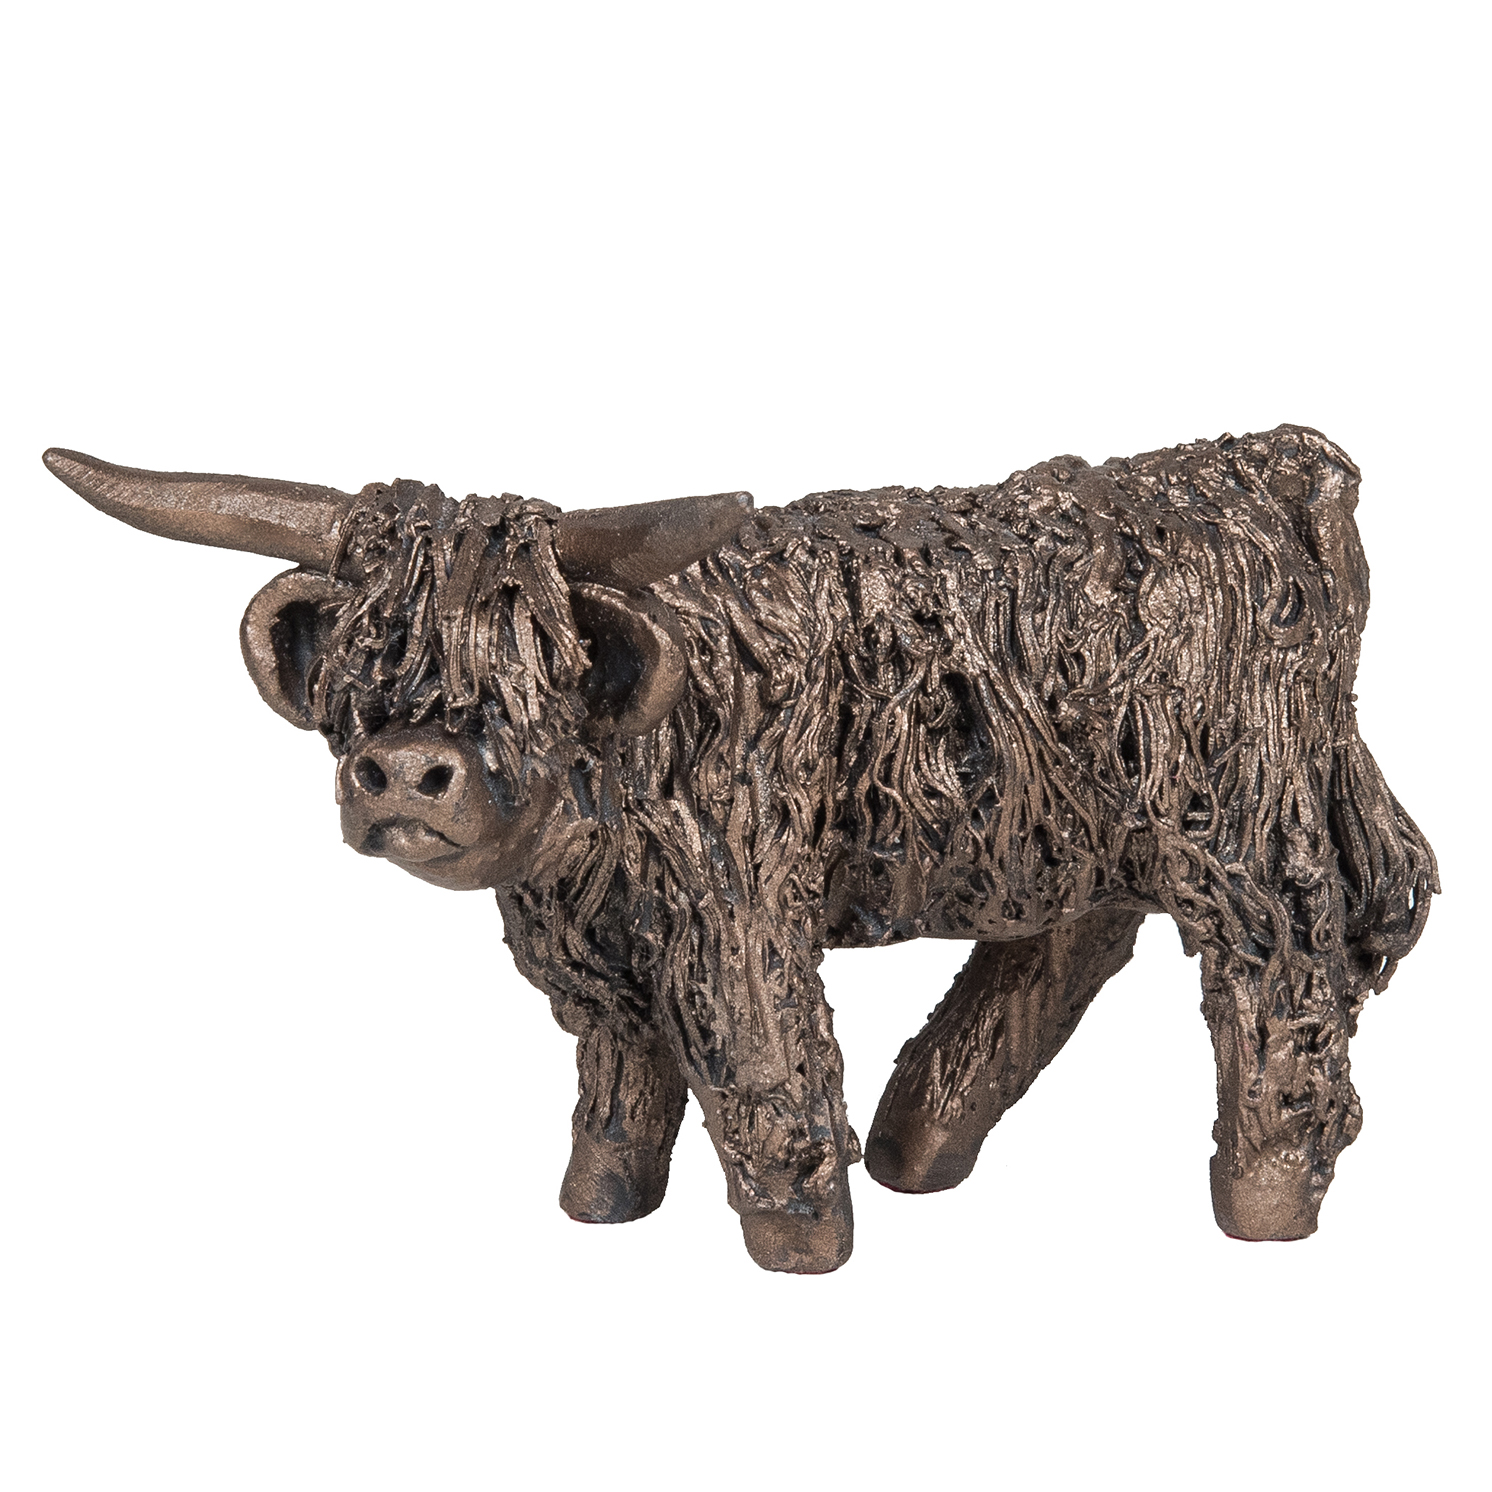 Frith Sculpture – Angus – Highland Cow Standing in Bronze Resin in Gift Box